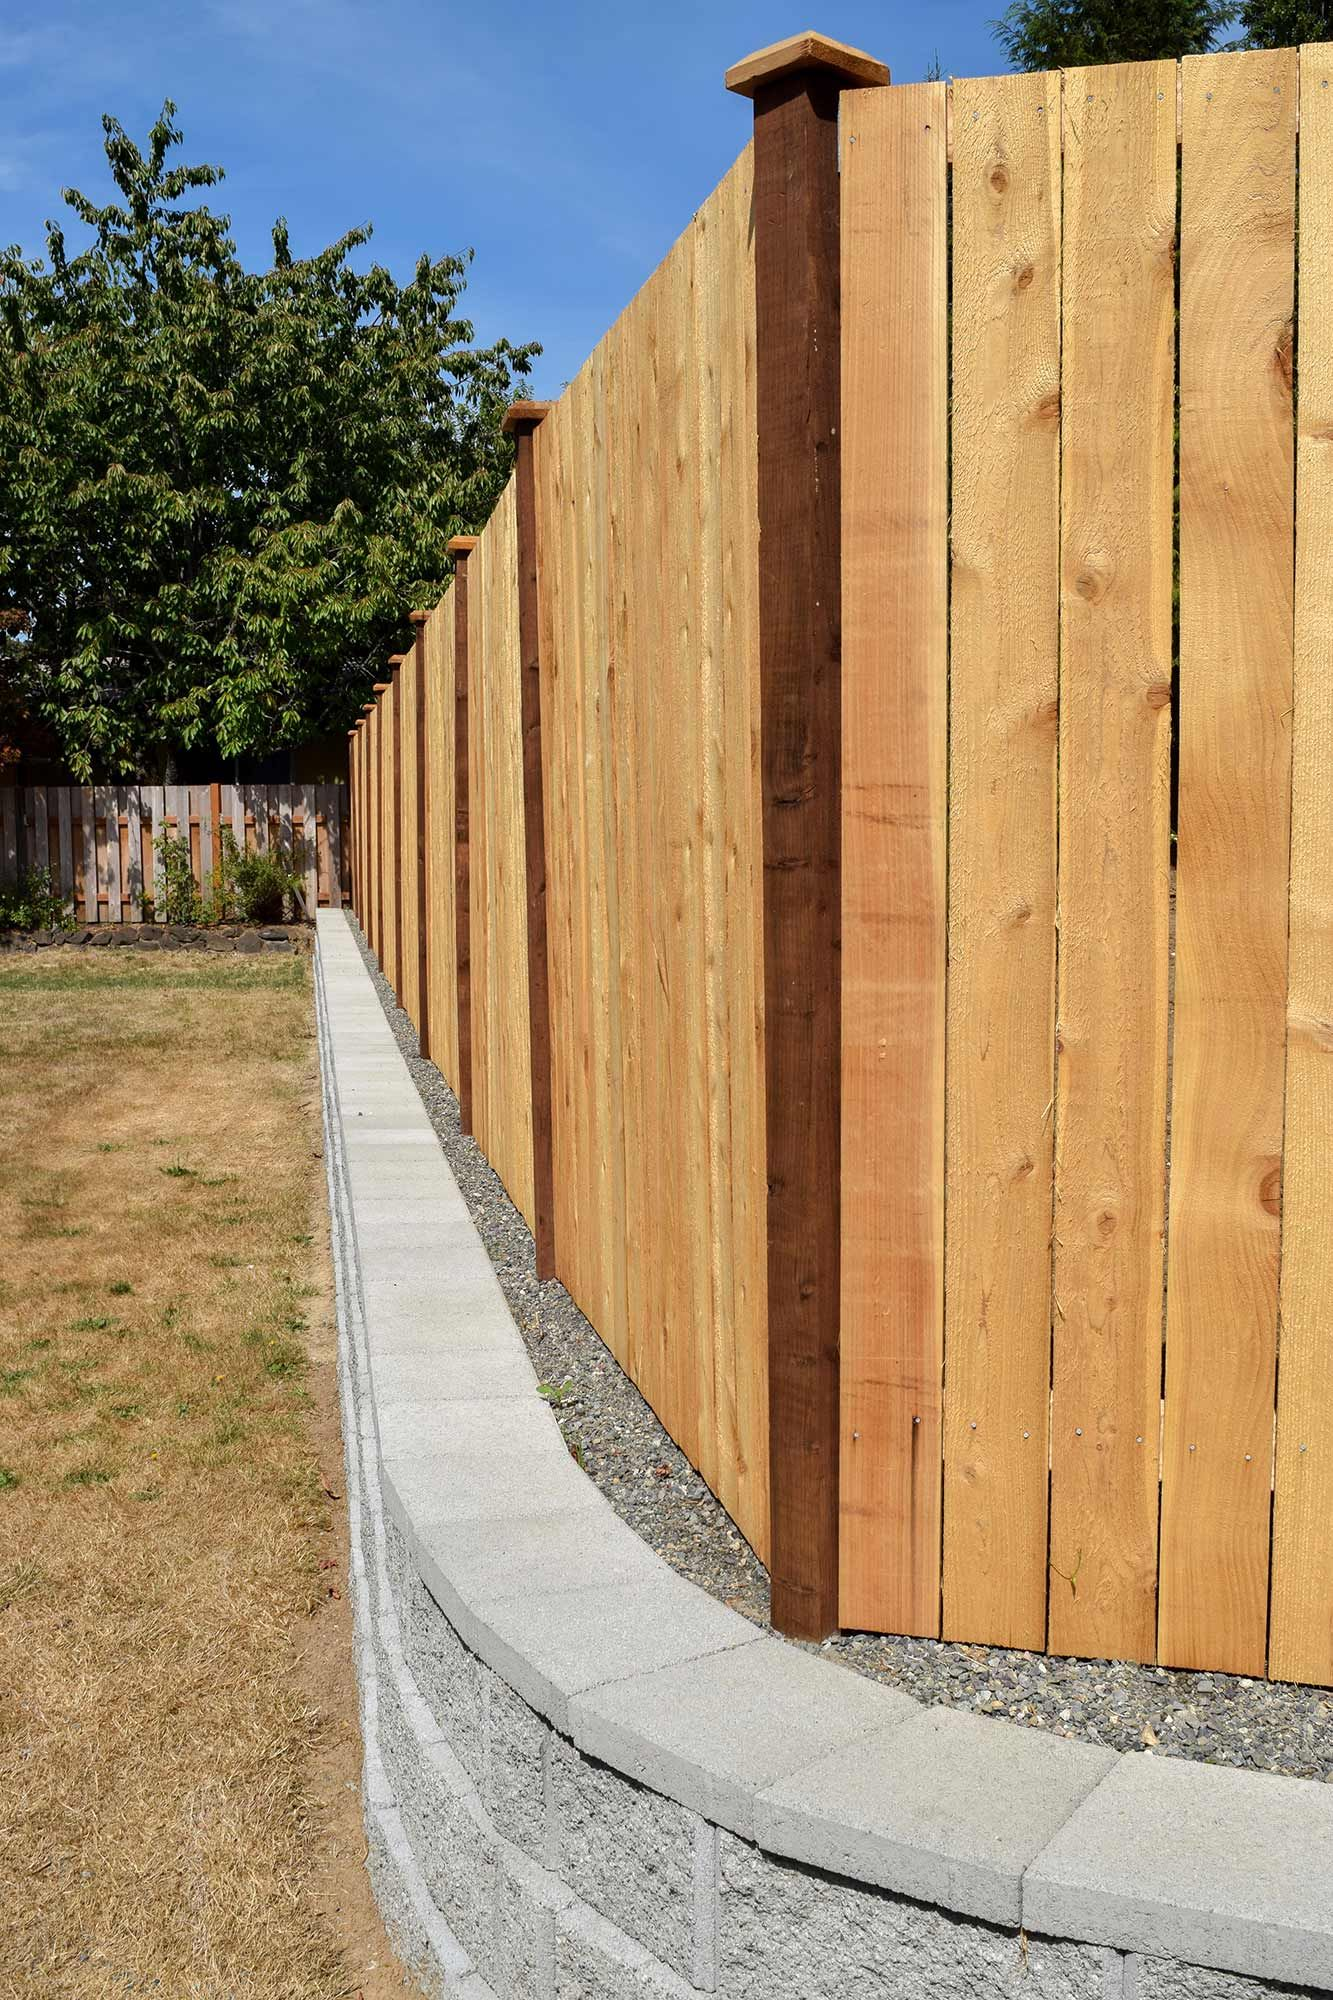 Panhandle Property Divider Fence Retaining Wall In Tumwater Retaining Wall Fence Wood Retaining Wall Fence Design